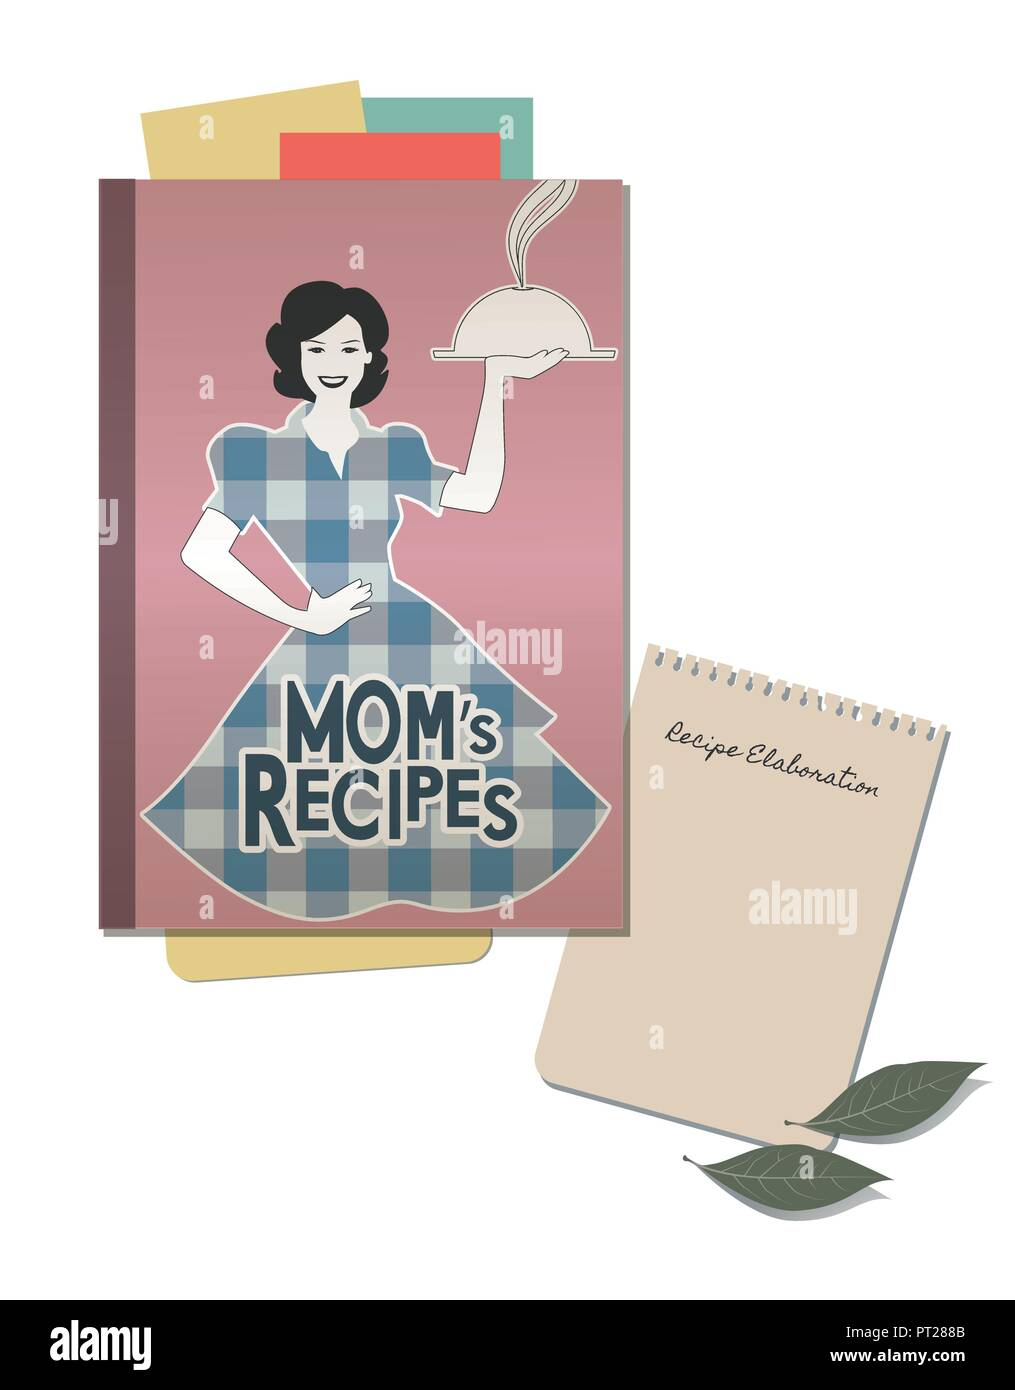 Cookbook retro cover with mom's recipes. Note hand written and bay leaves - Stock Image